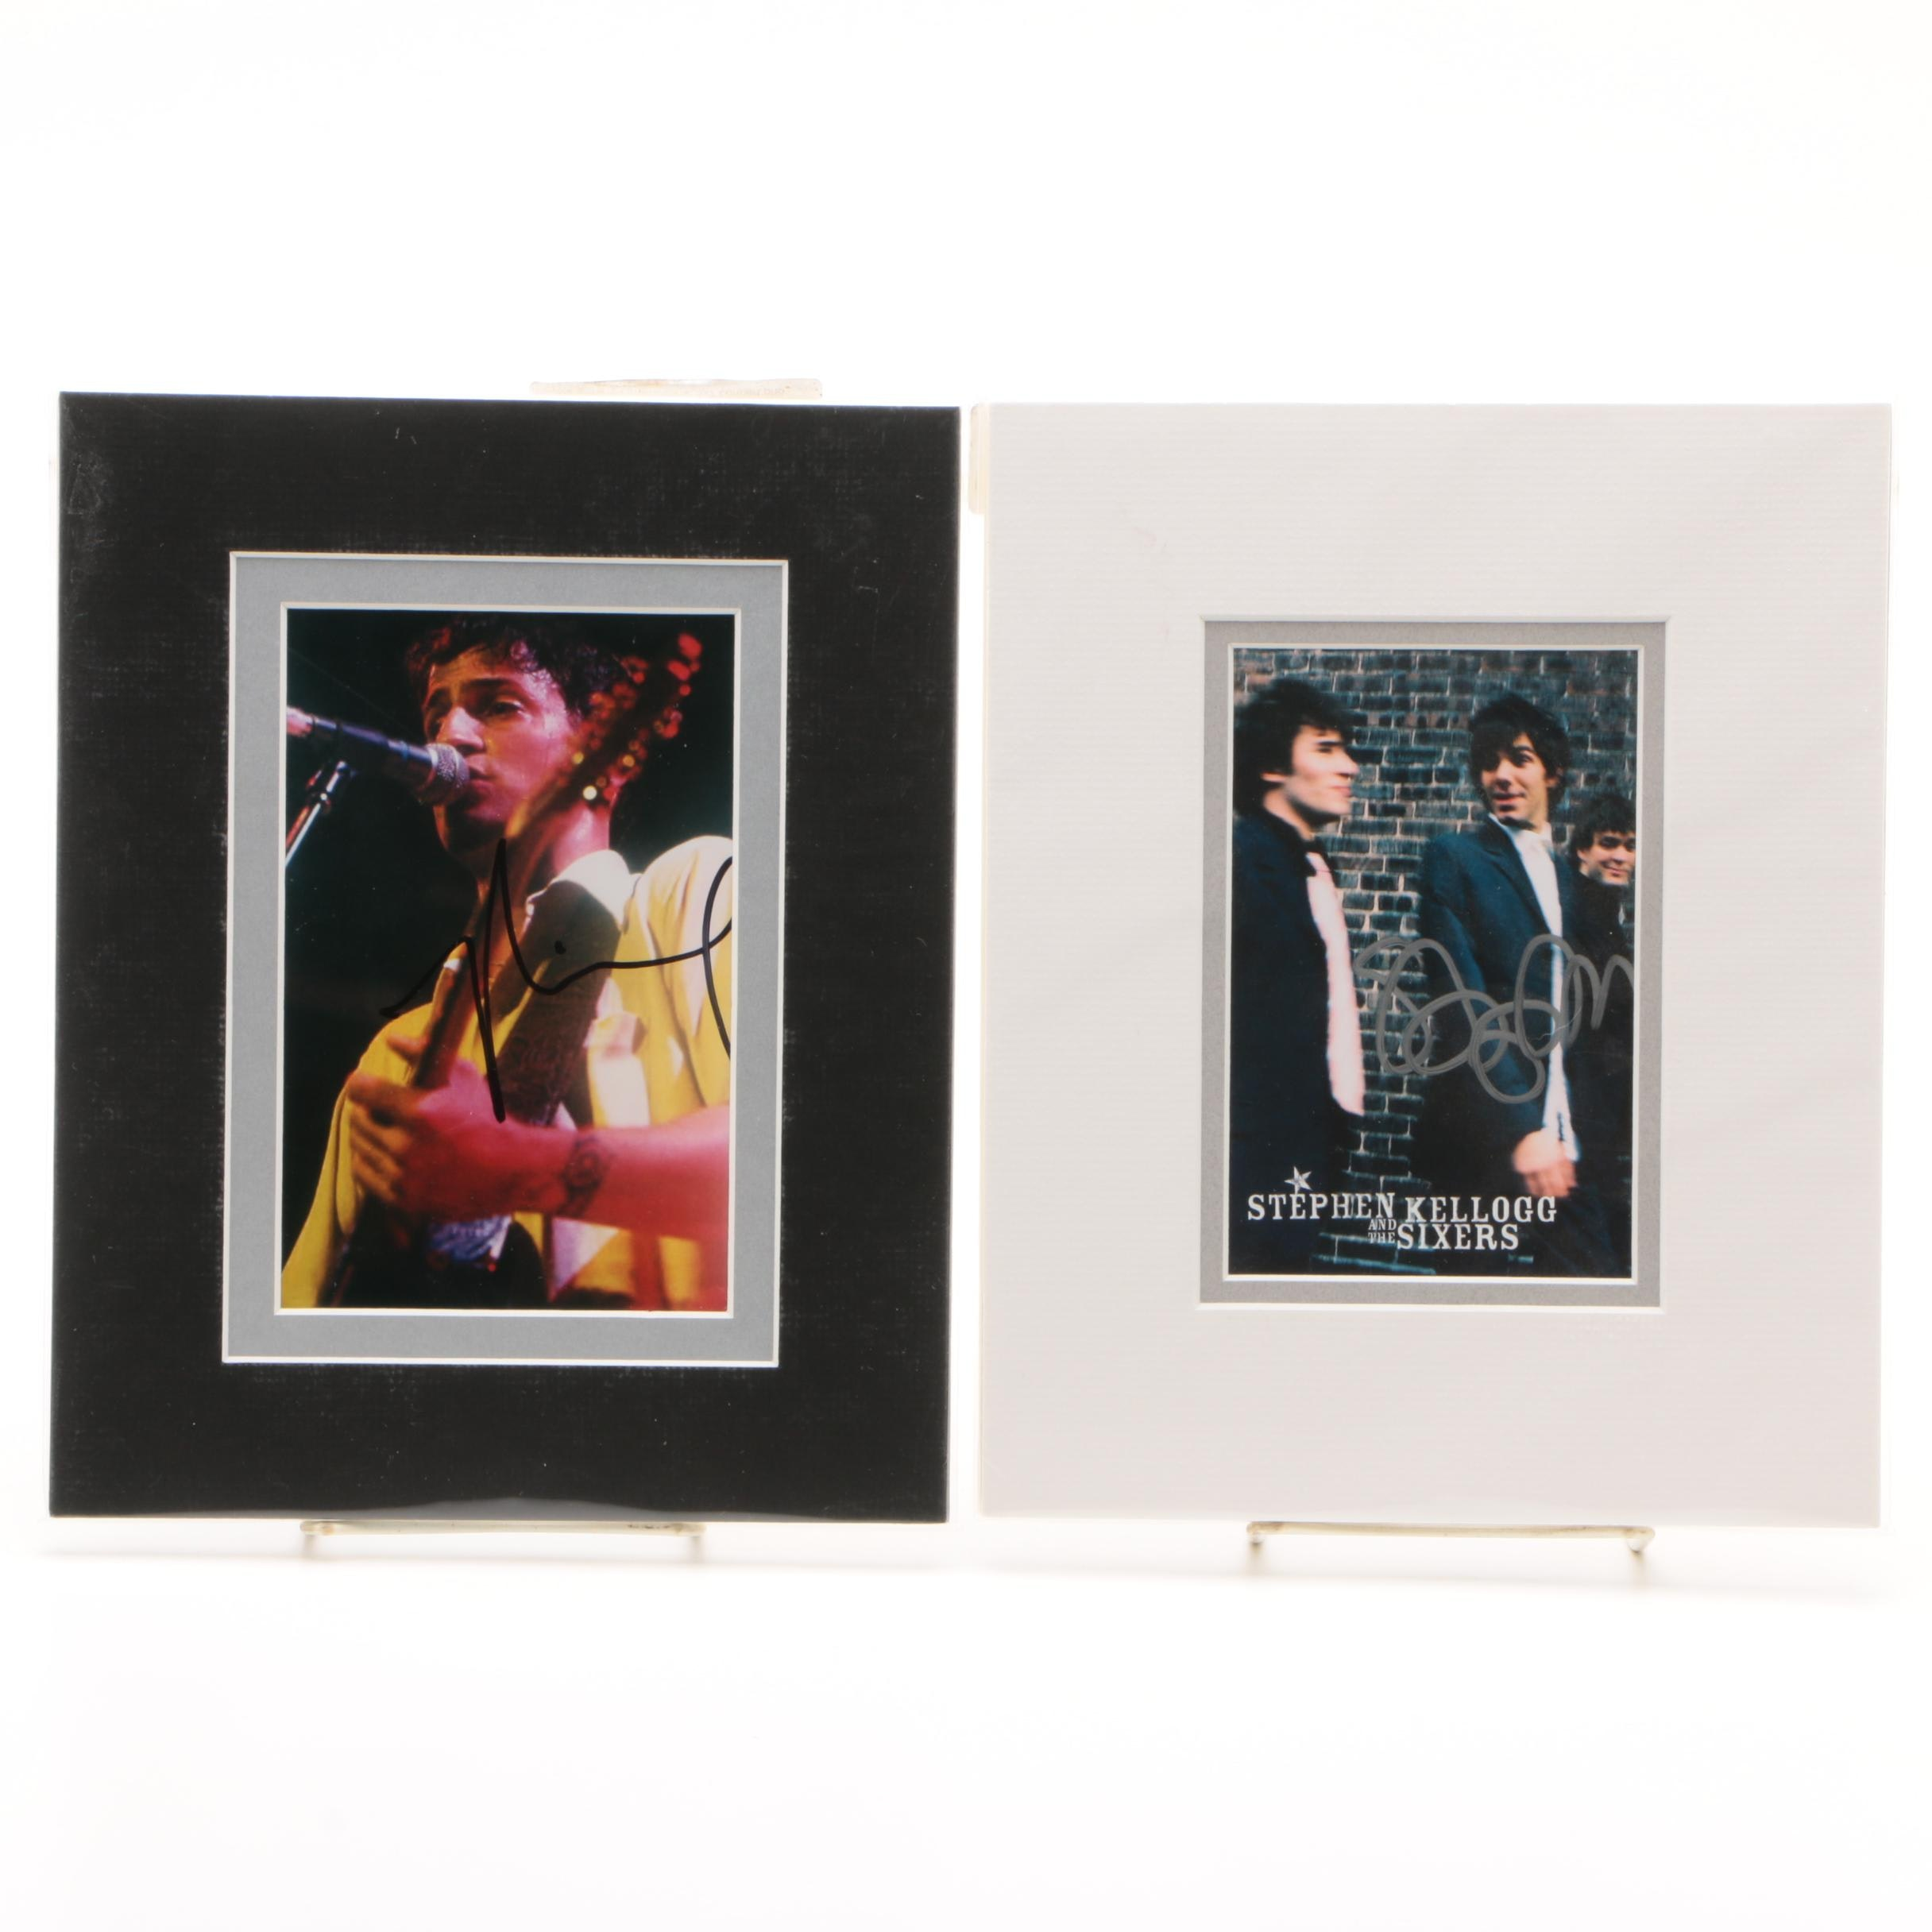 Stephen Kellogg and Michael Tolcher Autographed Photos